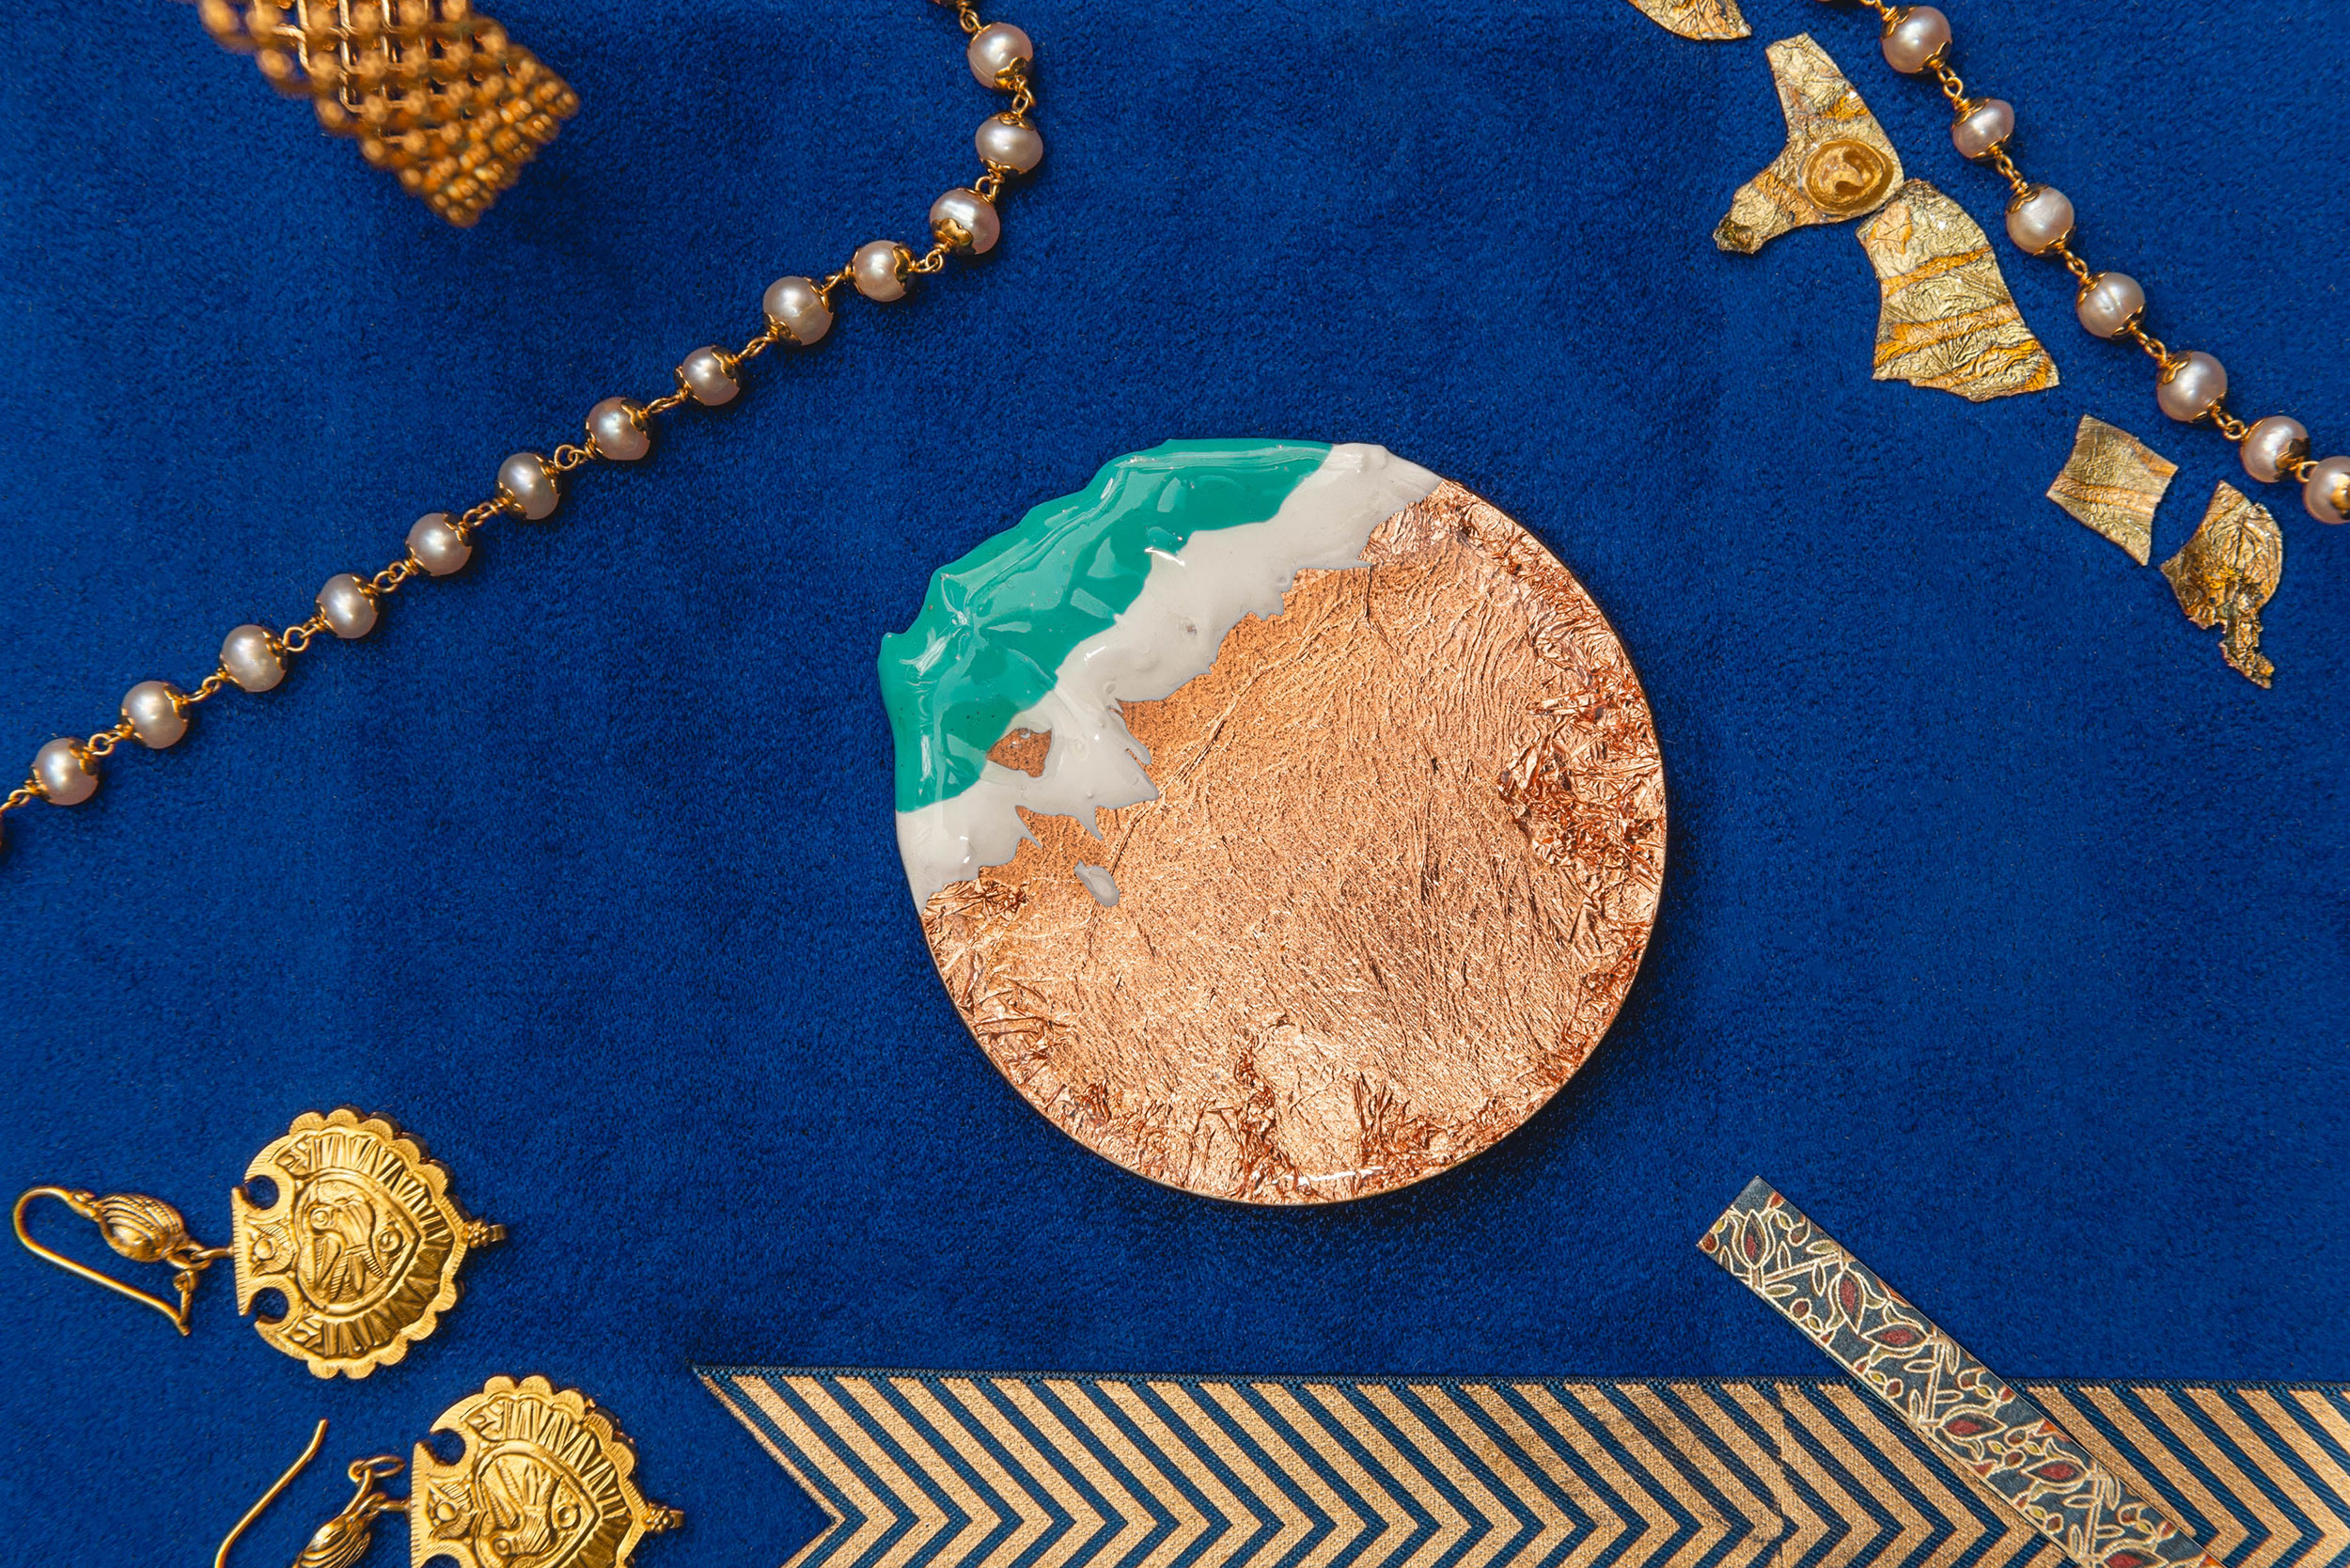 khaosphilos, dipped, diwali, festive, gold, silver, copper, hand painted, hand made, made in india, madeinindia, art, art by naina, naina.co, naina redhu, artist, contemporary art, gold foil, copper foil, silver foil, brooches, wooden, painting on wood, magnet clasp, canvas, wearable art, art jewellery, art accessories, art accessory